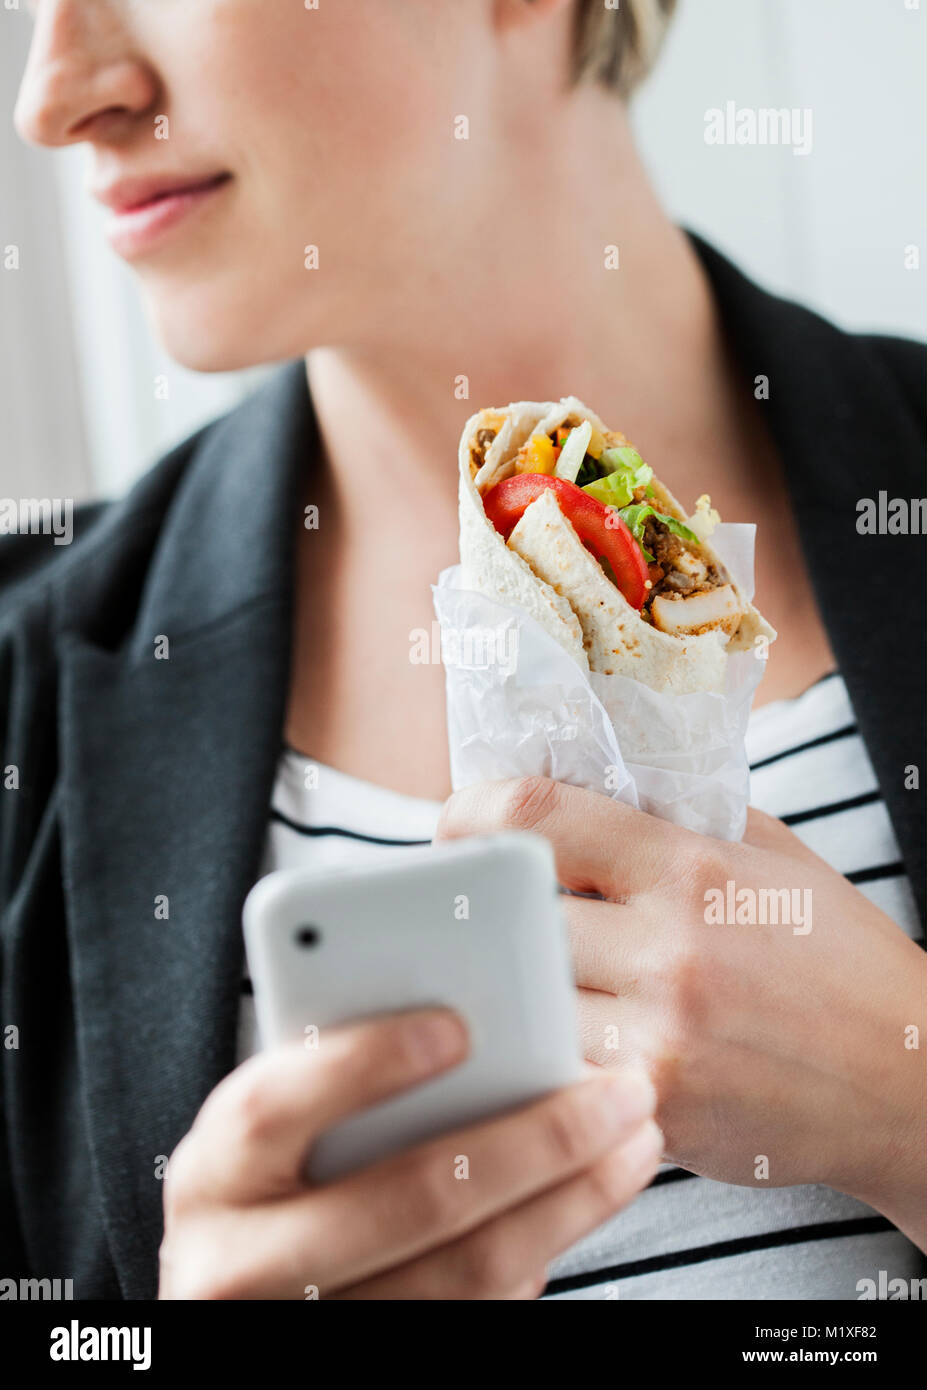 Mid adult woman holding chicken tortilla - Stock Image